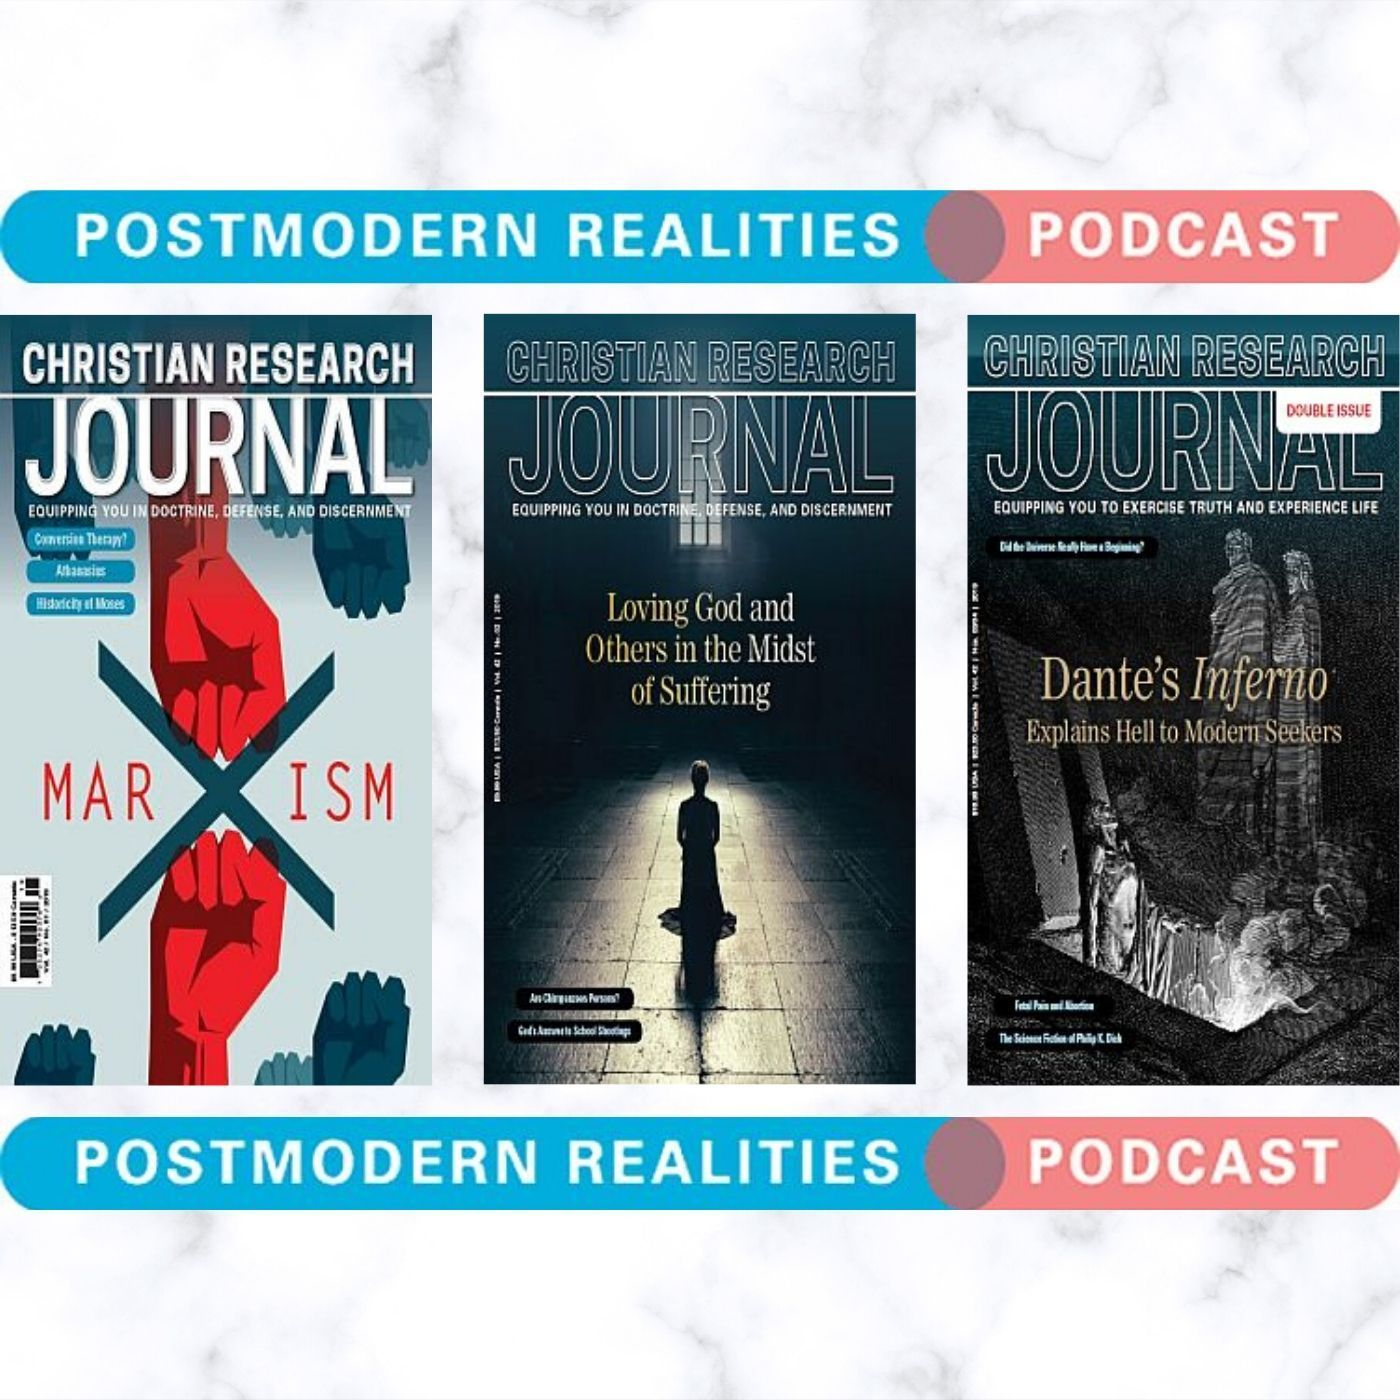 Postmodern Realities Episode 156 The Prayers Rose Like Incense: Anglican Worship and the Normative Principle